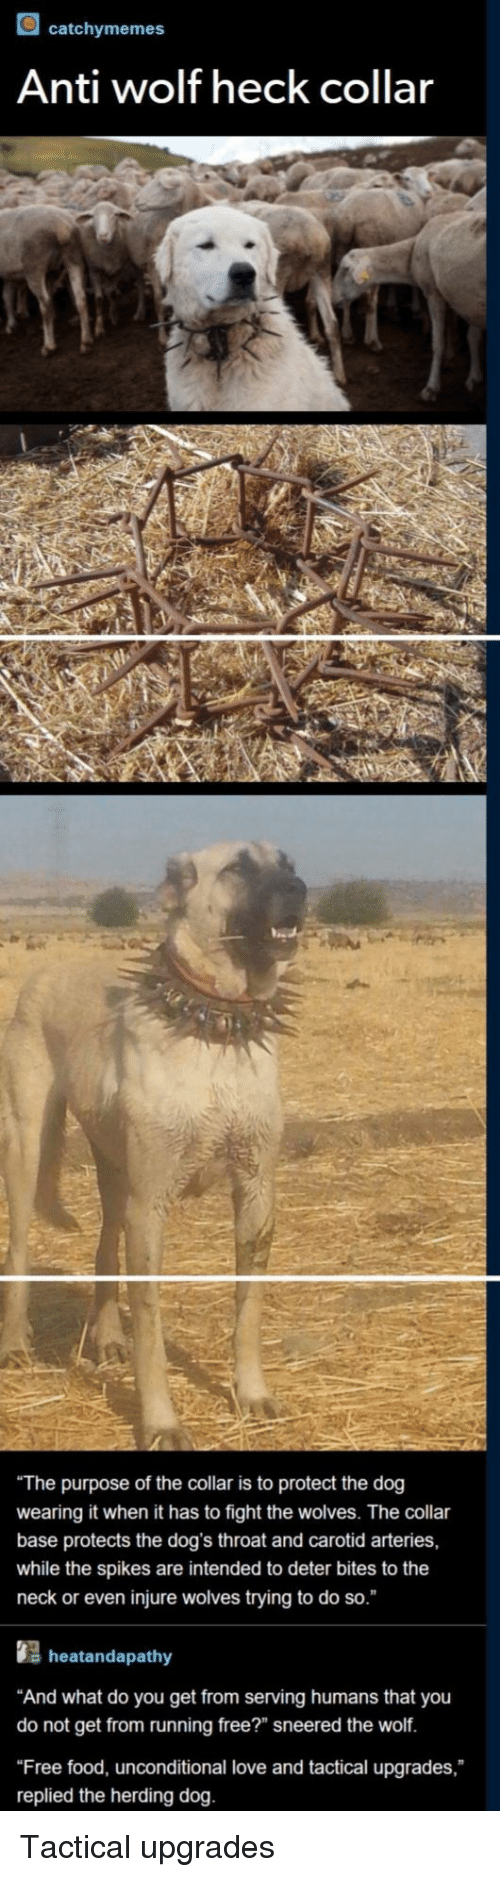 """herding: catchymemes  Anti wolf heck collar  The purpose of the collar is to protect the dog  wearing it when it has to fight the wolves. The collar  base protects the dog's throat and carotid arteries,  while the spikes are intended to deter bites to the  neck or even injure wolves trying to do so.  s heatandapathy  And what do you get from serving humans that you  do not get from running free?"""" sneered the wolf.  Free food, unconditional love and tactical upgrades,  replied the herding dog. Tactical upgrades"""